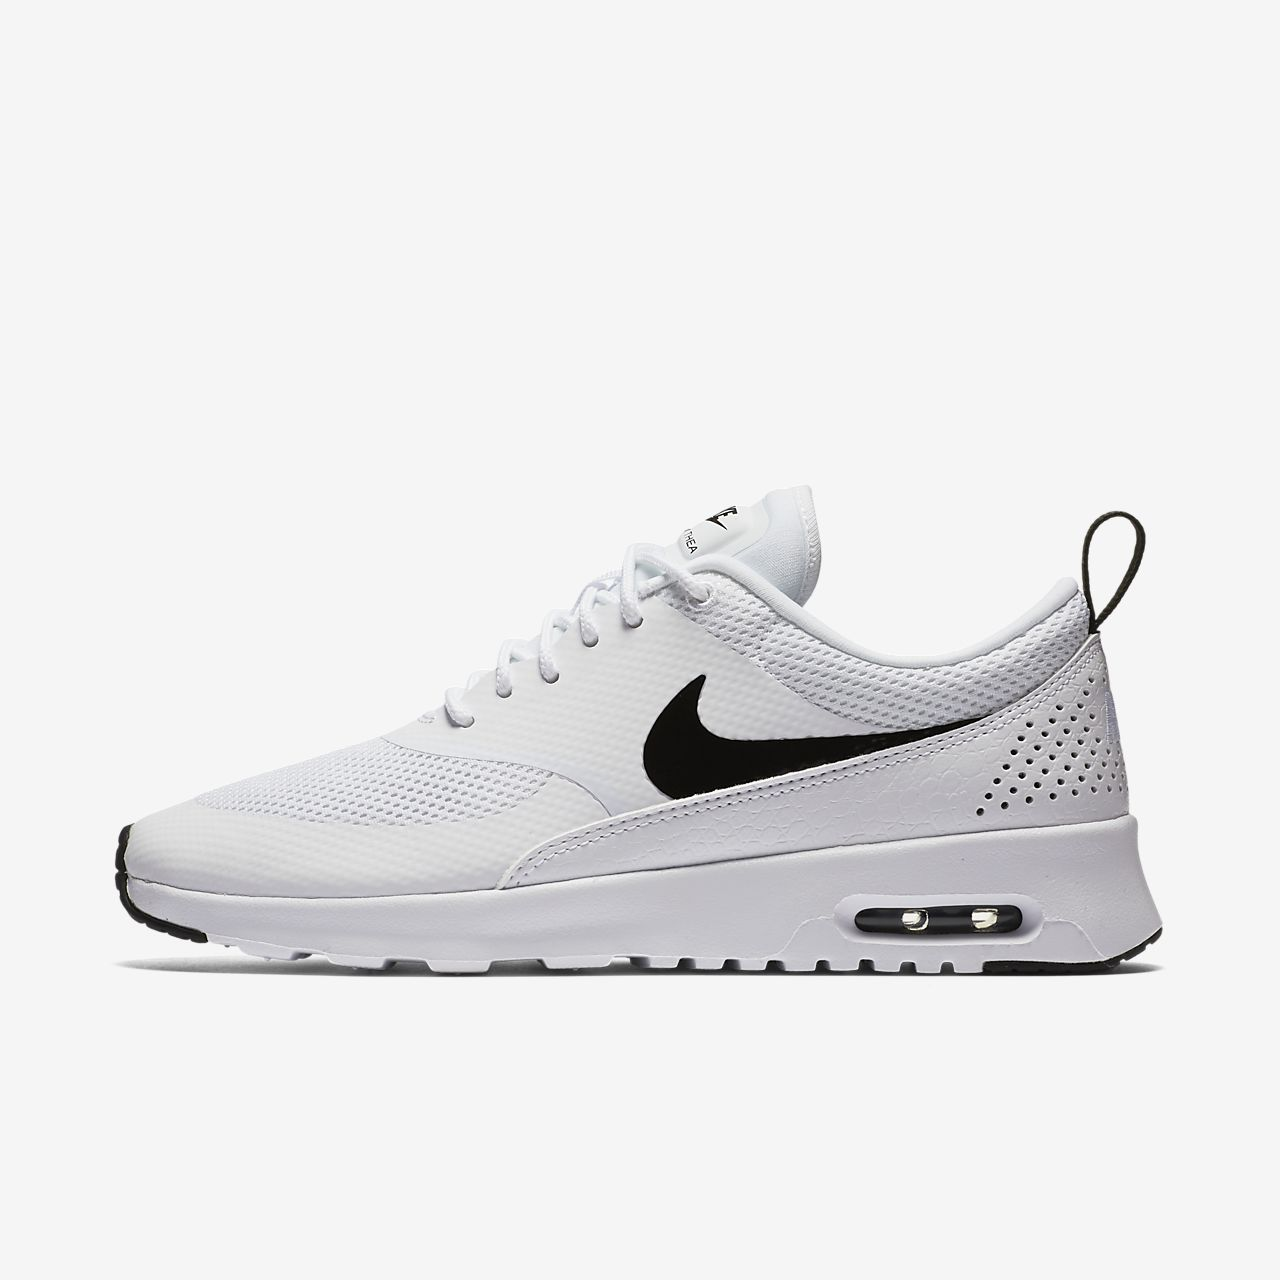 nike air max thea white shoes. Black Bedroom Furniture Sets. Home Design Ideas